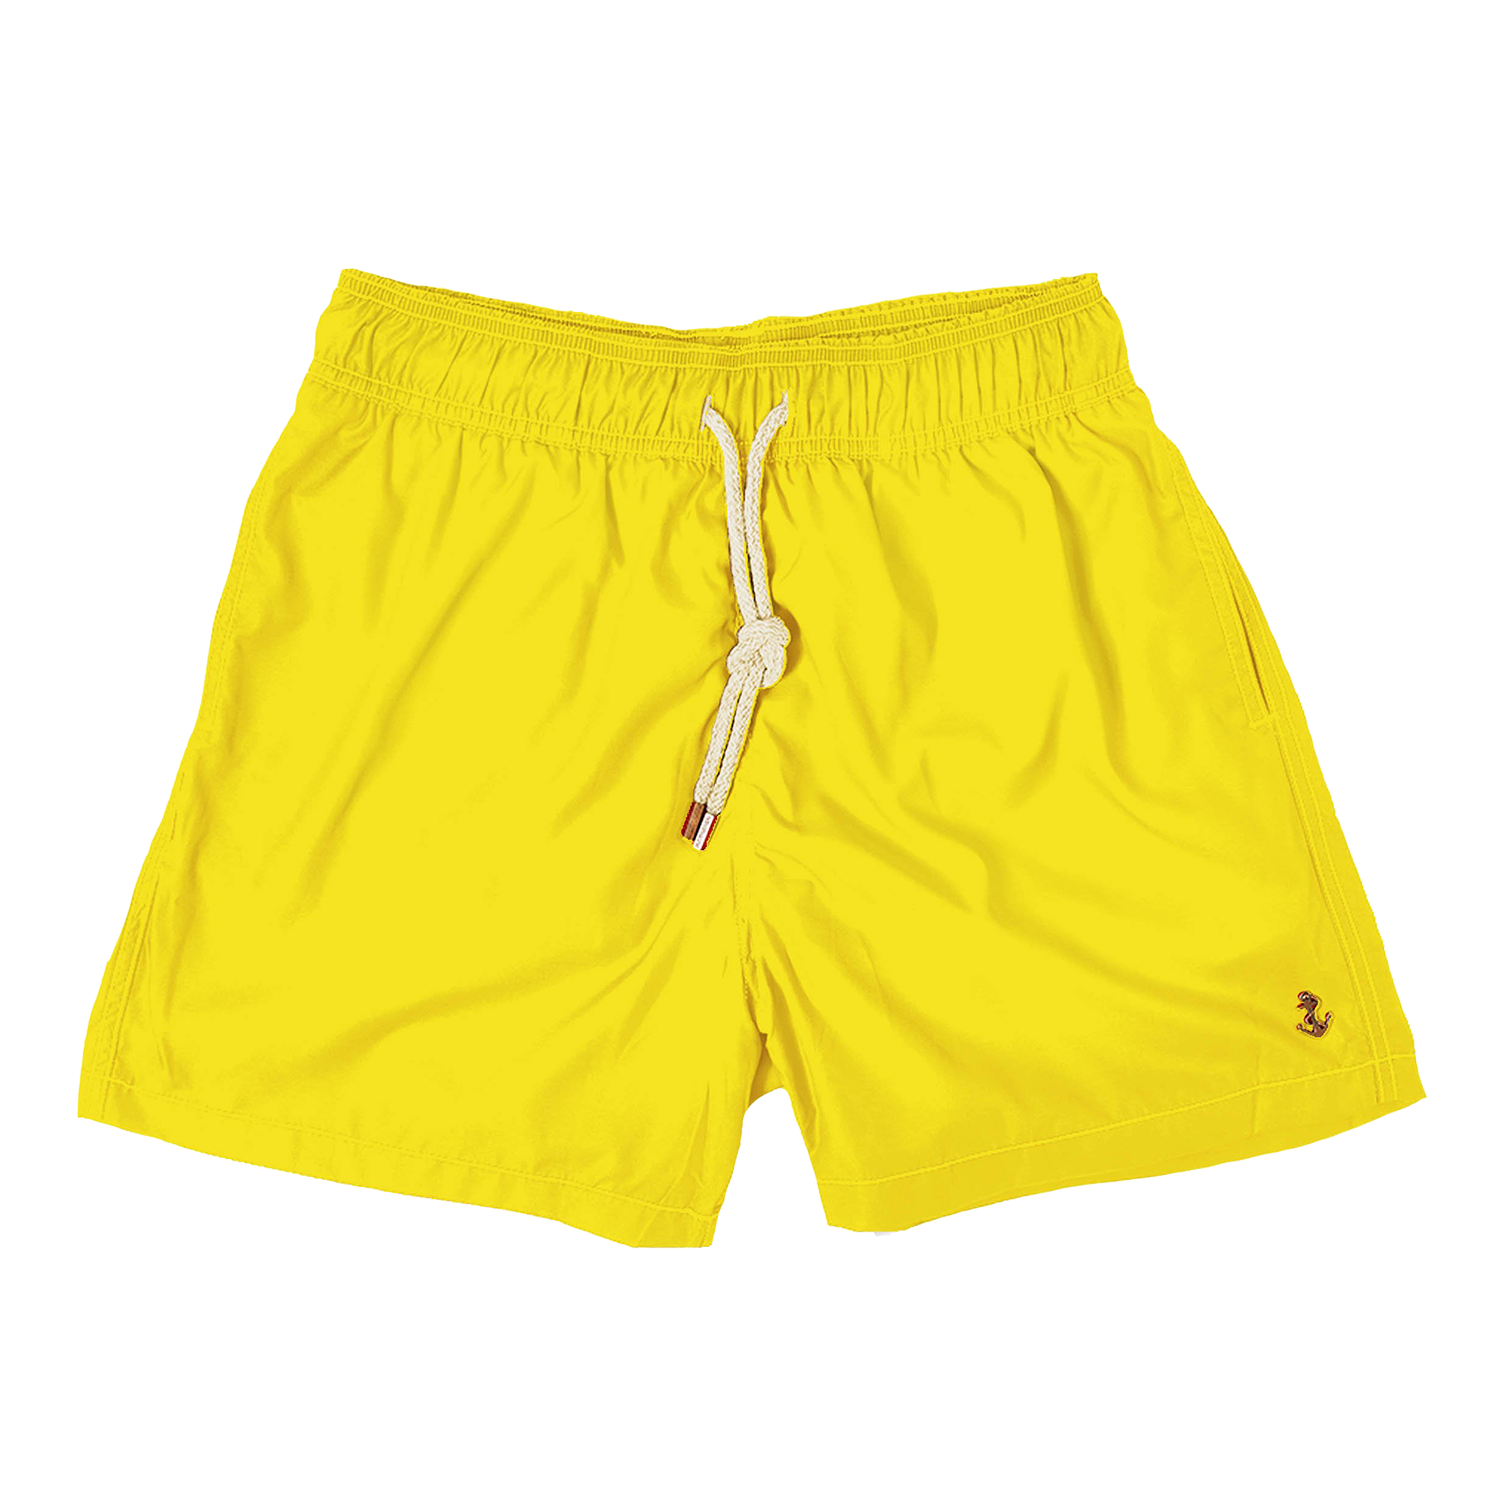 90's yellow - mens swim trunks - retromarine